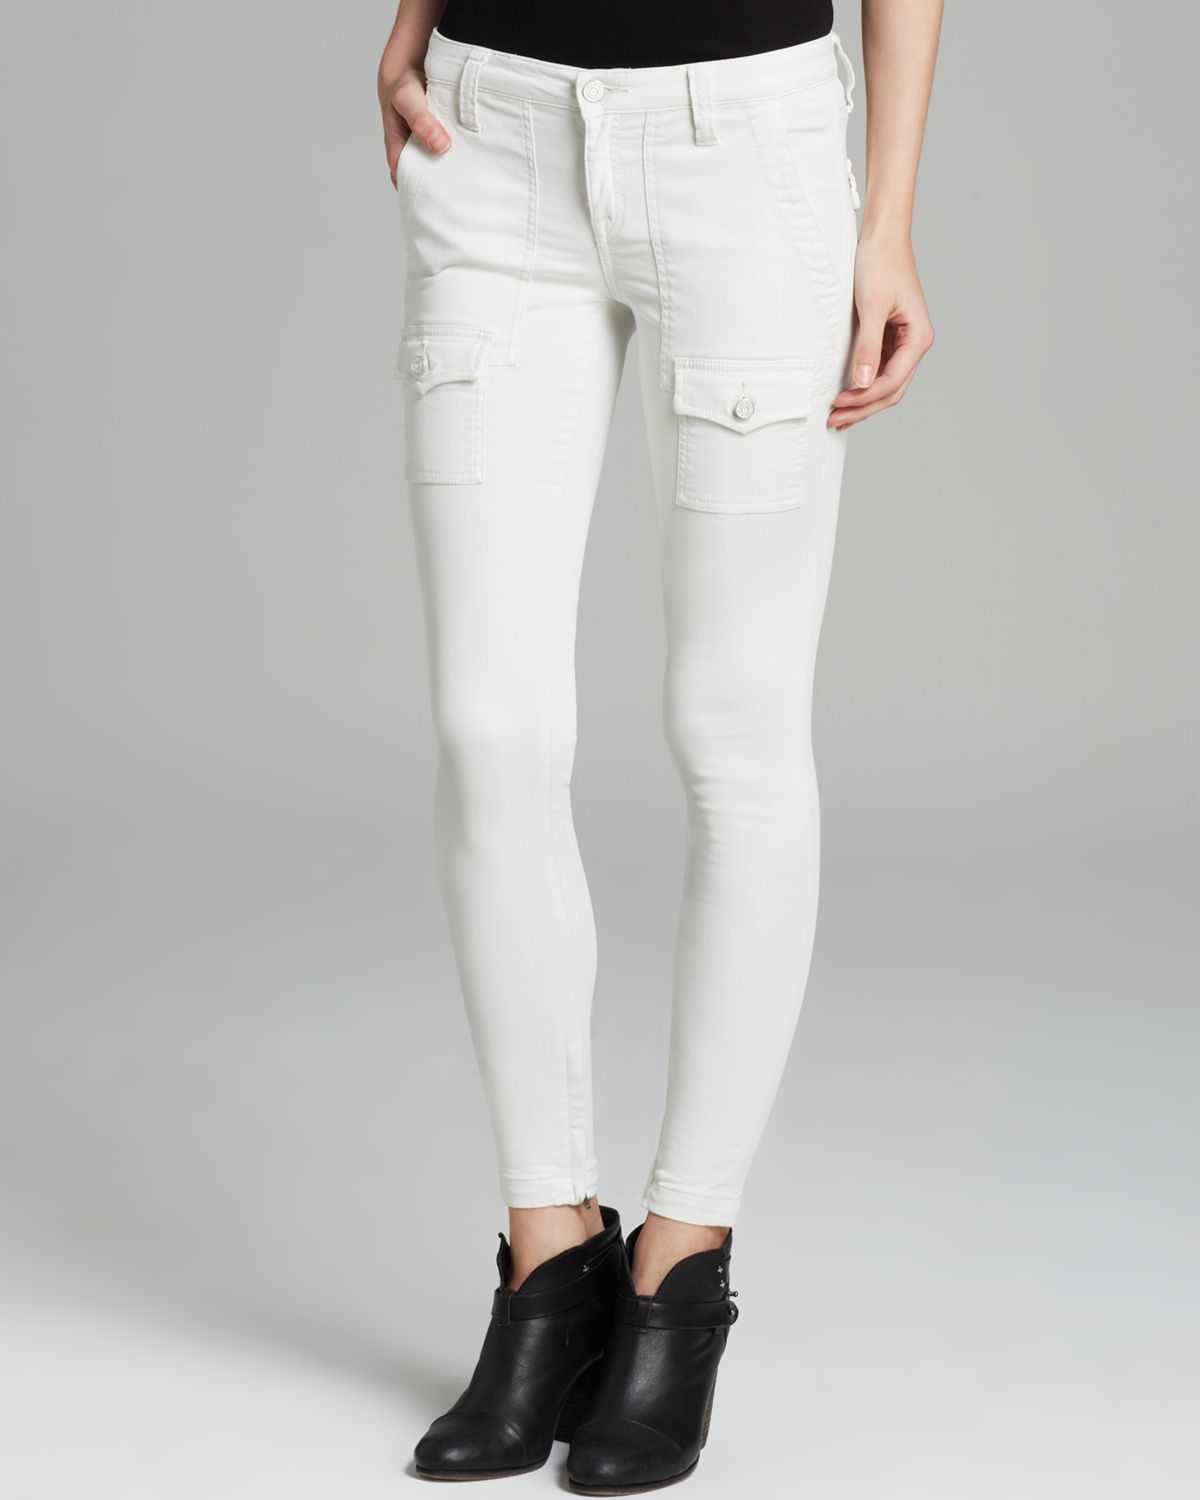 Joie So Real Skinny Jeans in White | Lyst